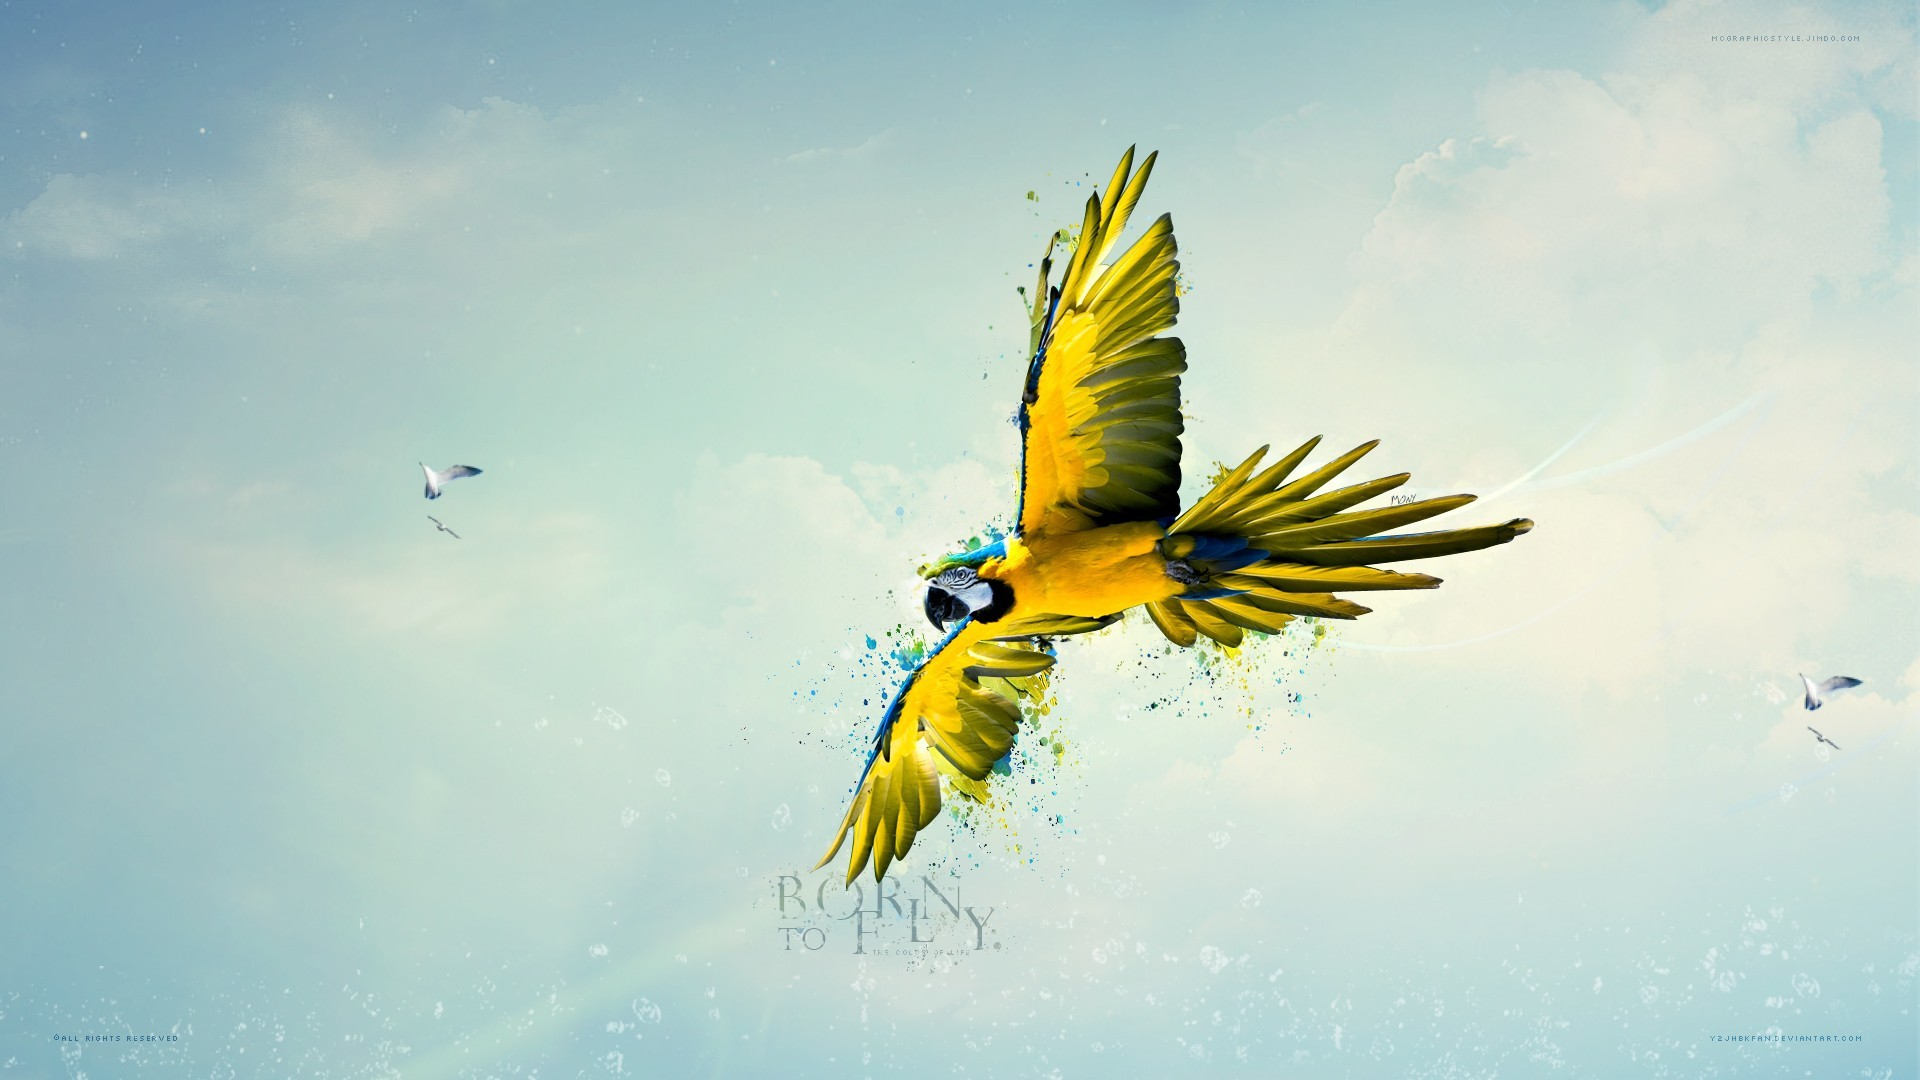 Birds text fly Parrots HD Wallpaper